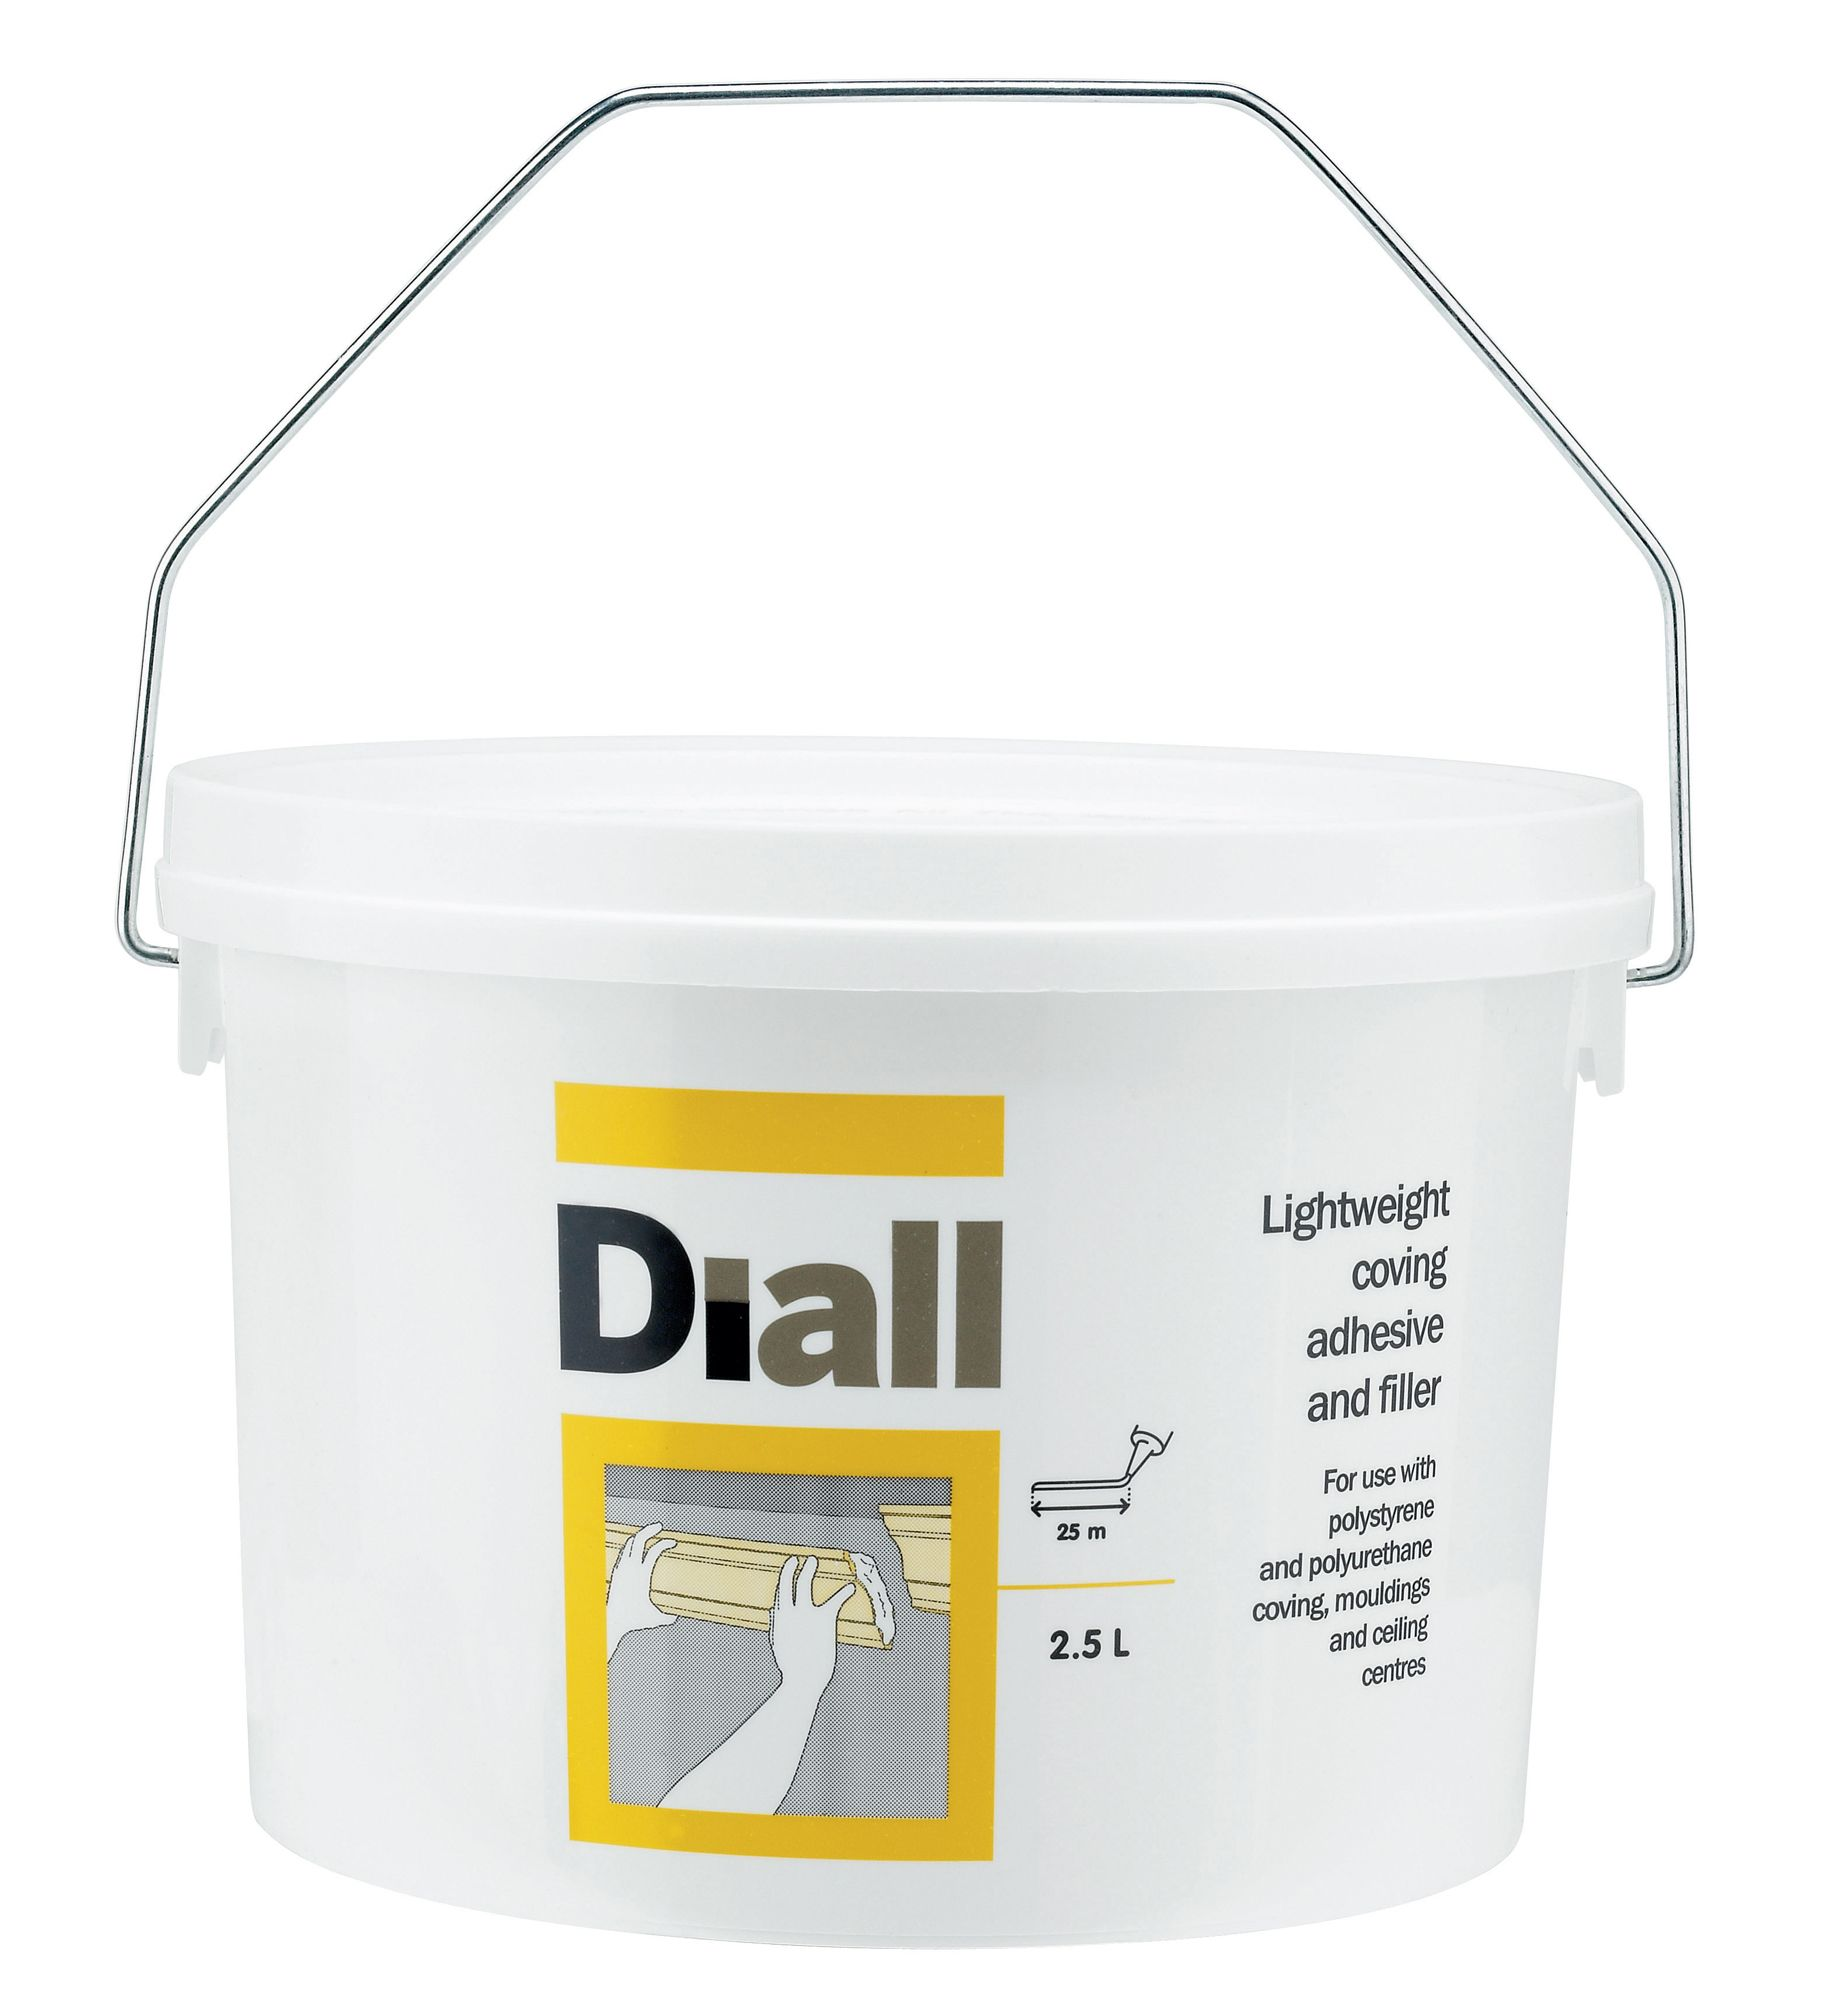 Diall Coving Adhesive Amp Filler 2500ml Departments